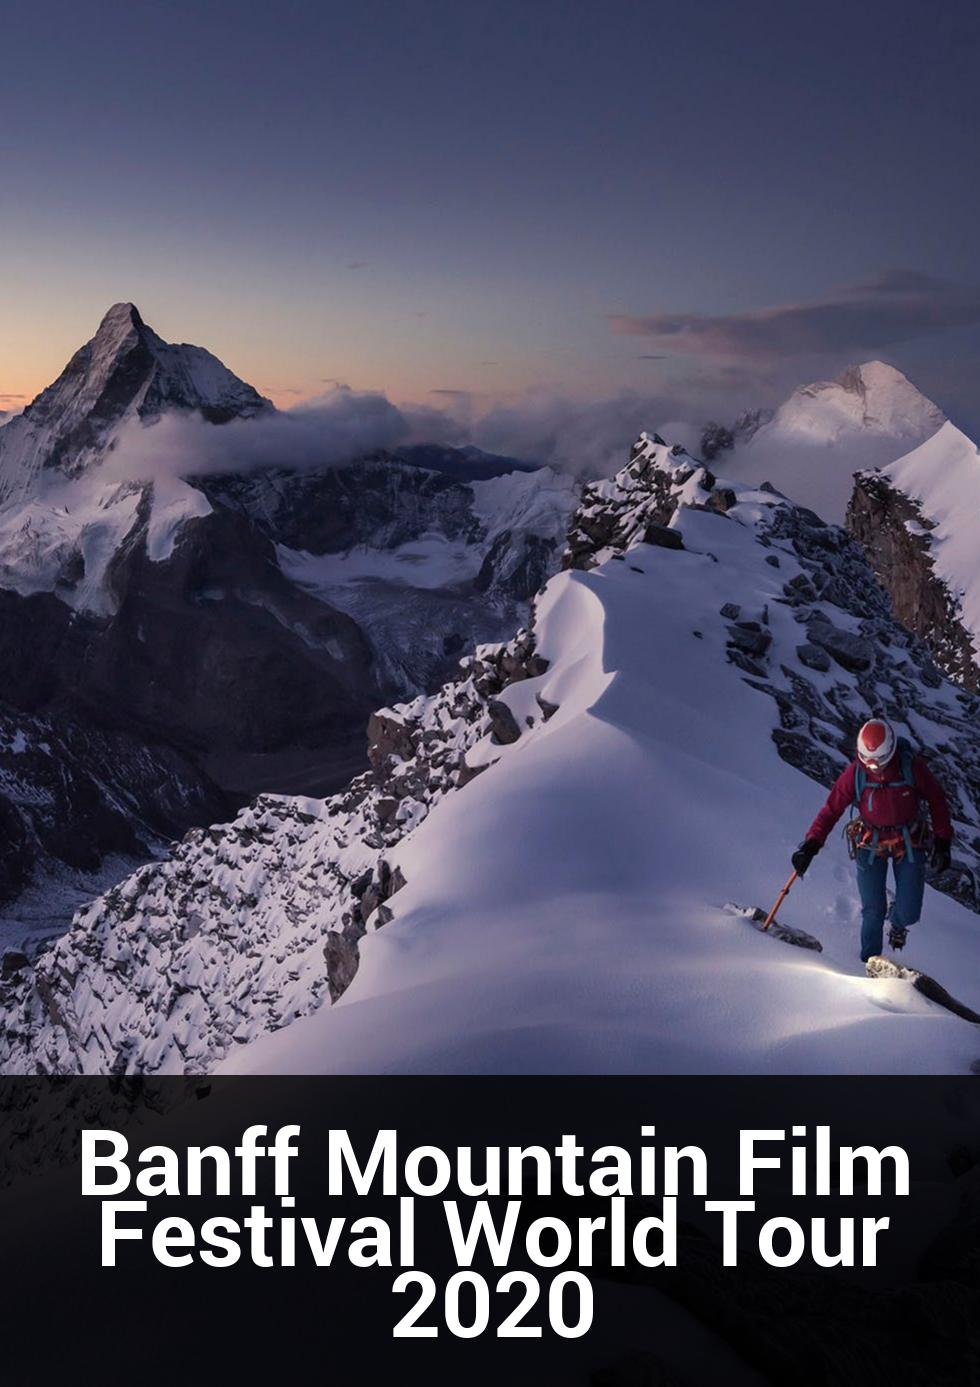 Banff Mountain Film Festival World Tour 2020 at National Film & Sound Archive